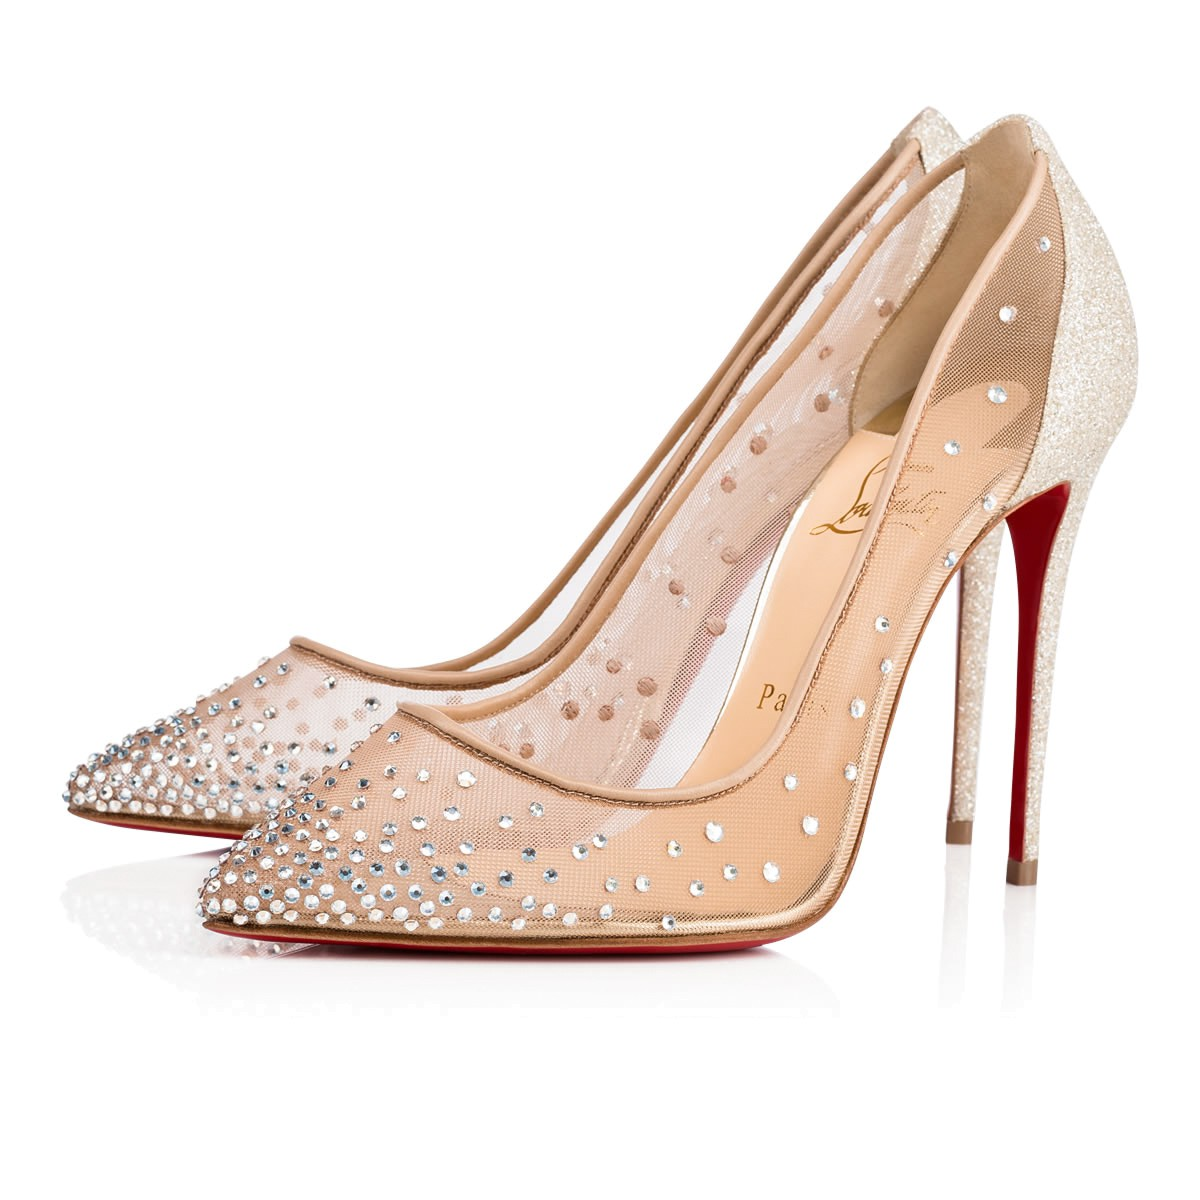 check out 1e49b 5a57f FOLLIES STRASS 100 Crystal Moonlight Rete and Strass - Women Shoes -  Christian Louboutin